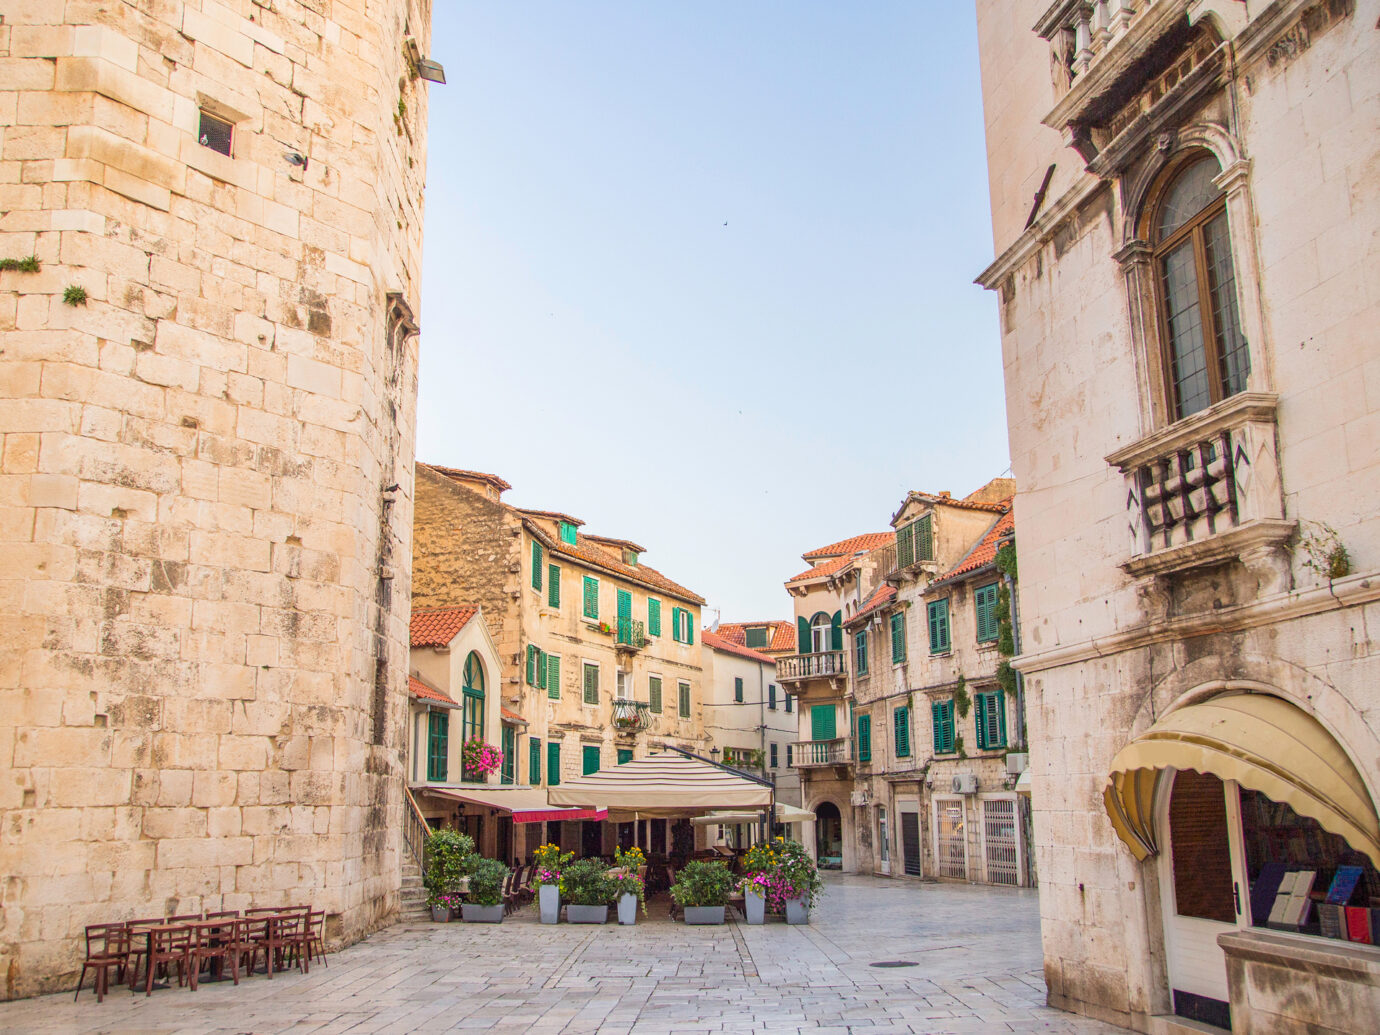 City of Split, Croatia, early morning in the old town square in the Diocletians Palace